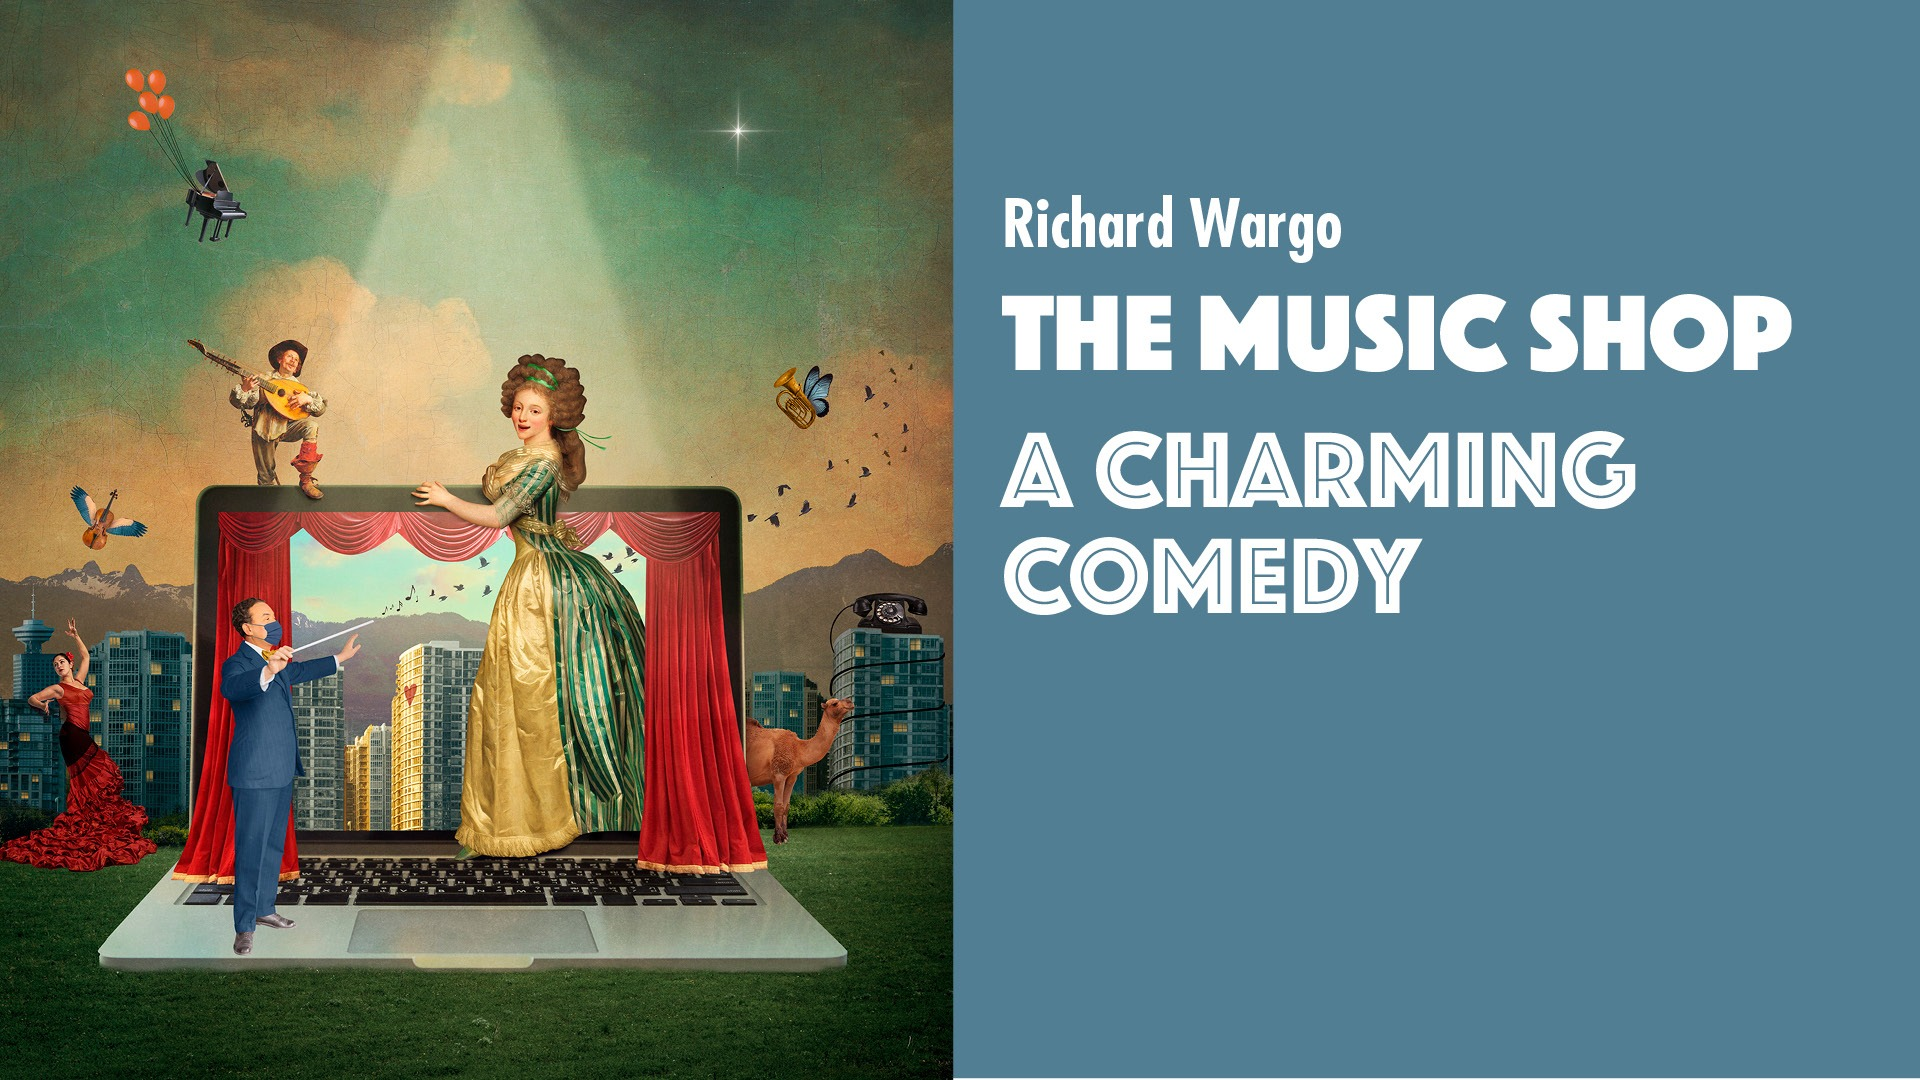 The Music Shop by Richard Wargo